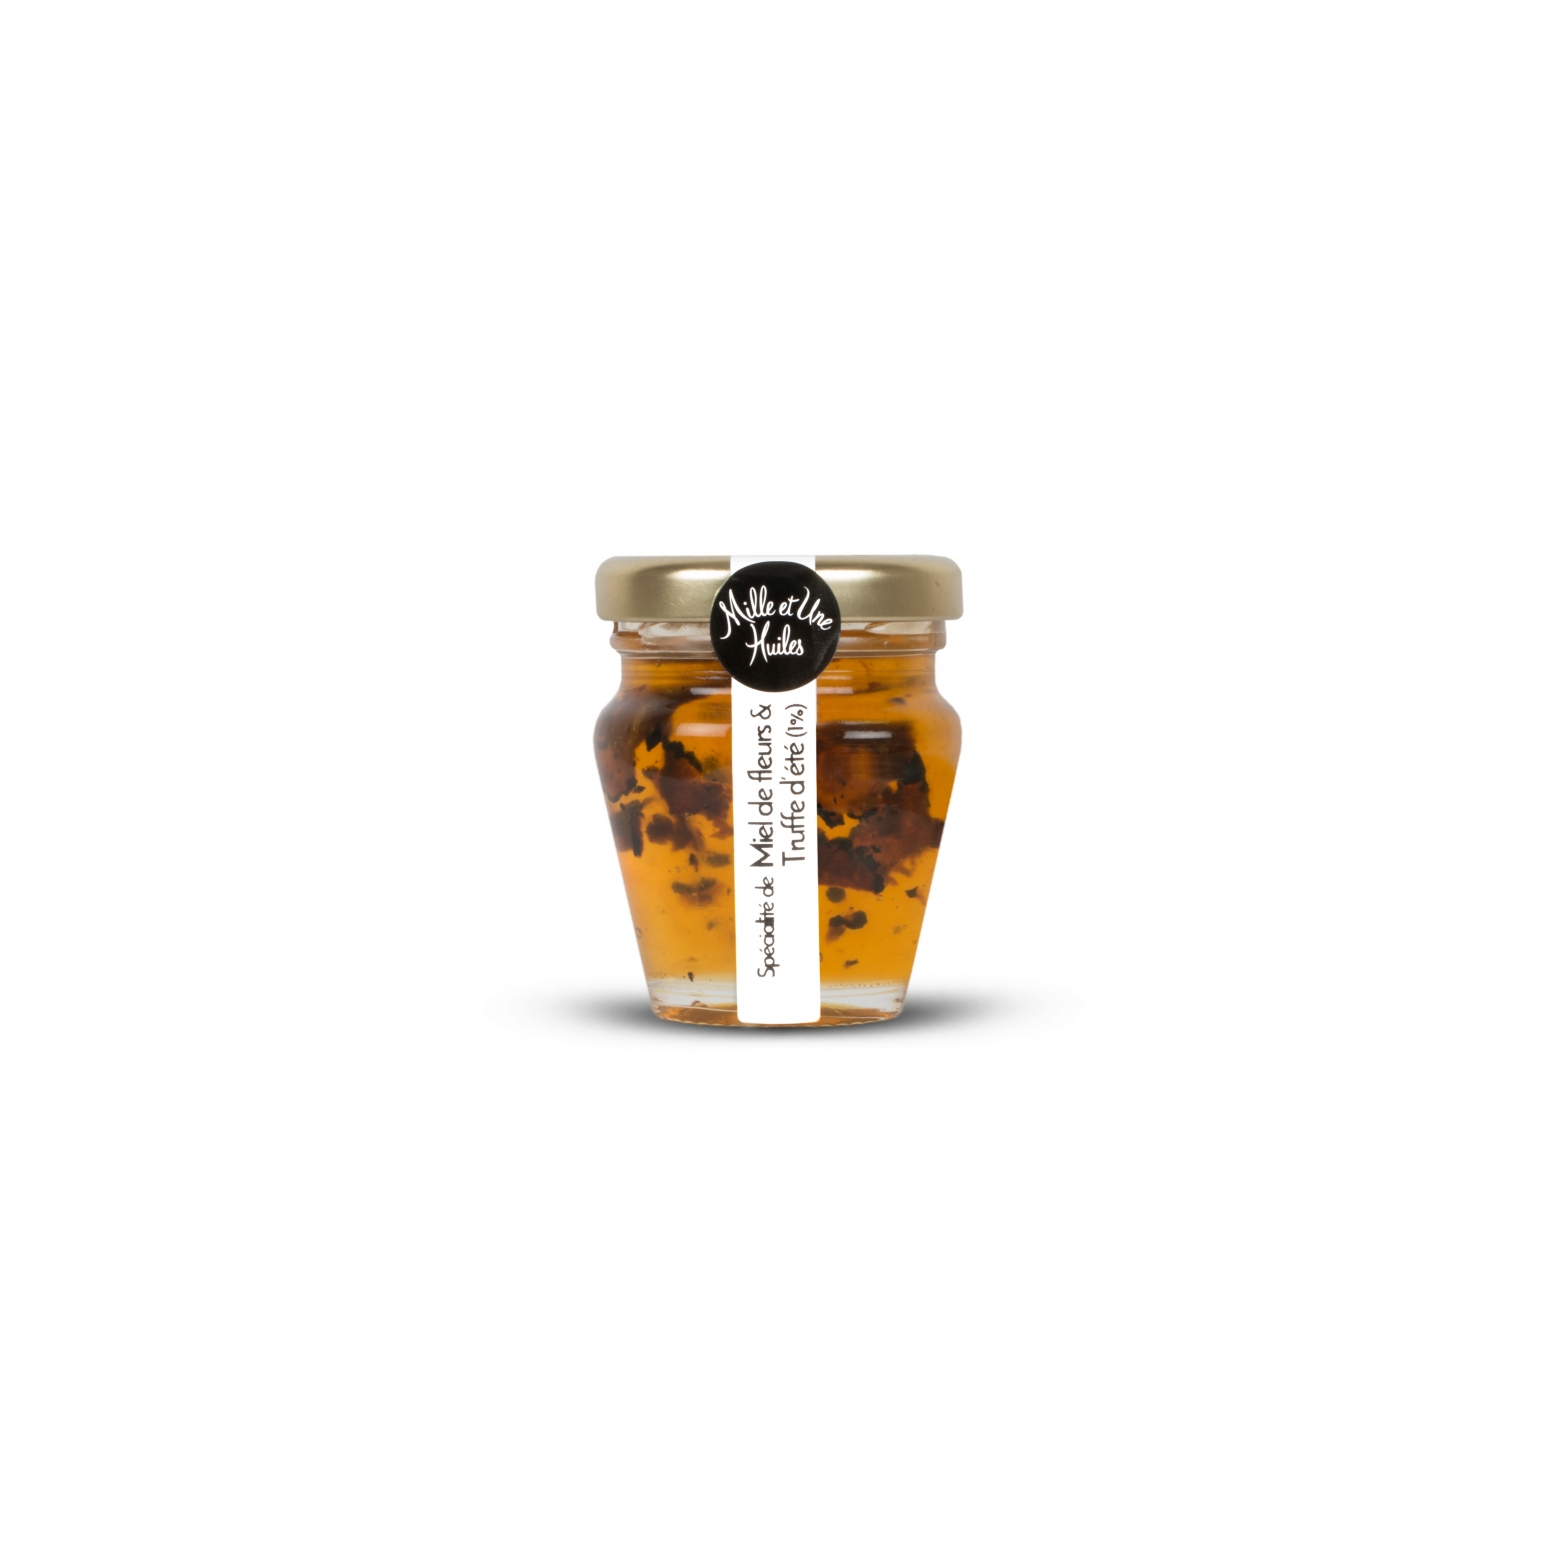 Honey with truffle, flavoured